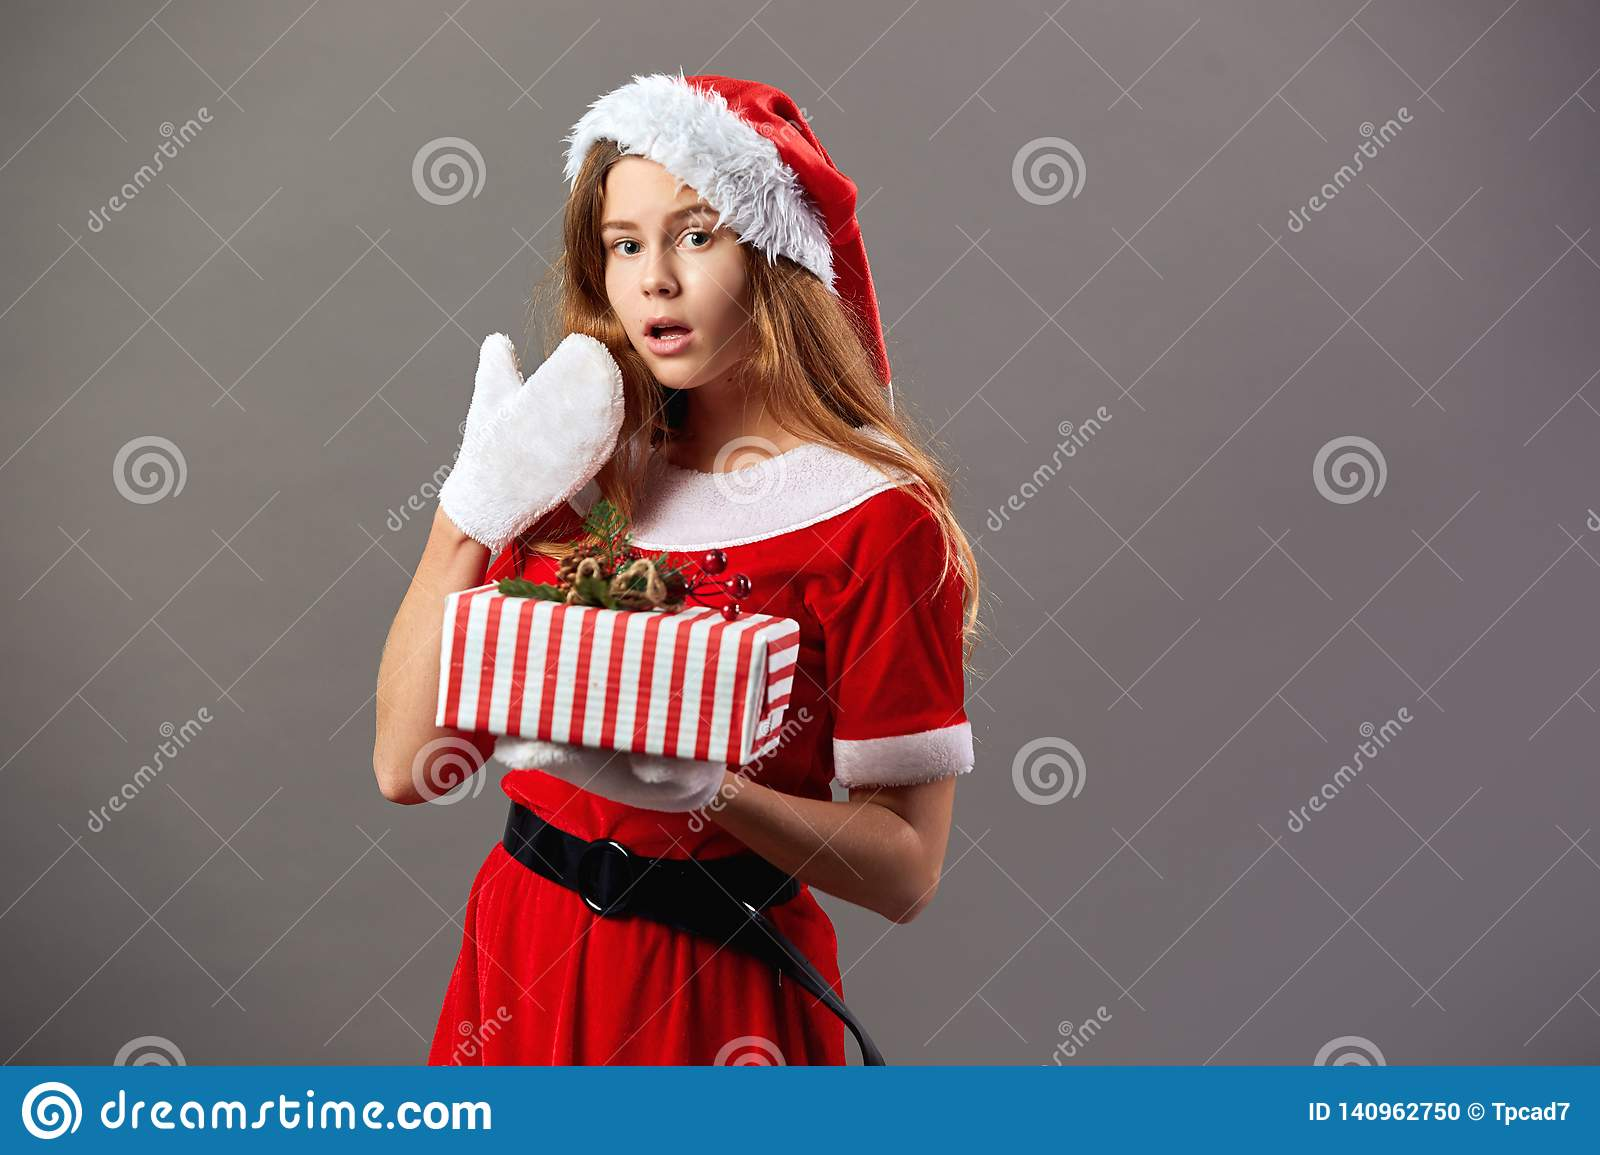 93368c416d383 Excited Charming Mrs.Claus Dressed In The Red Robe